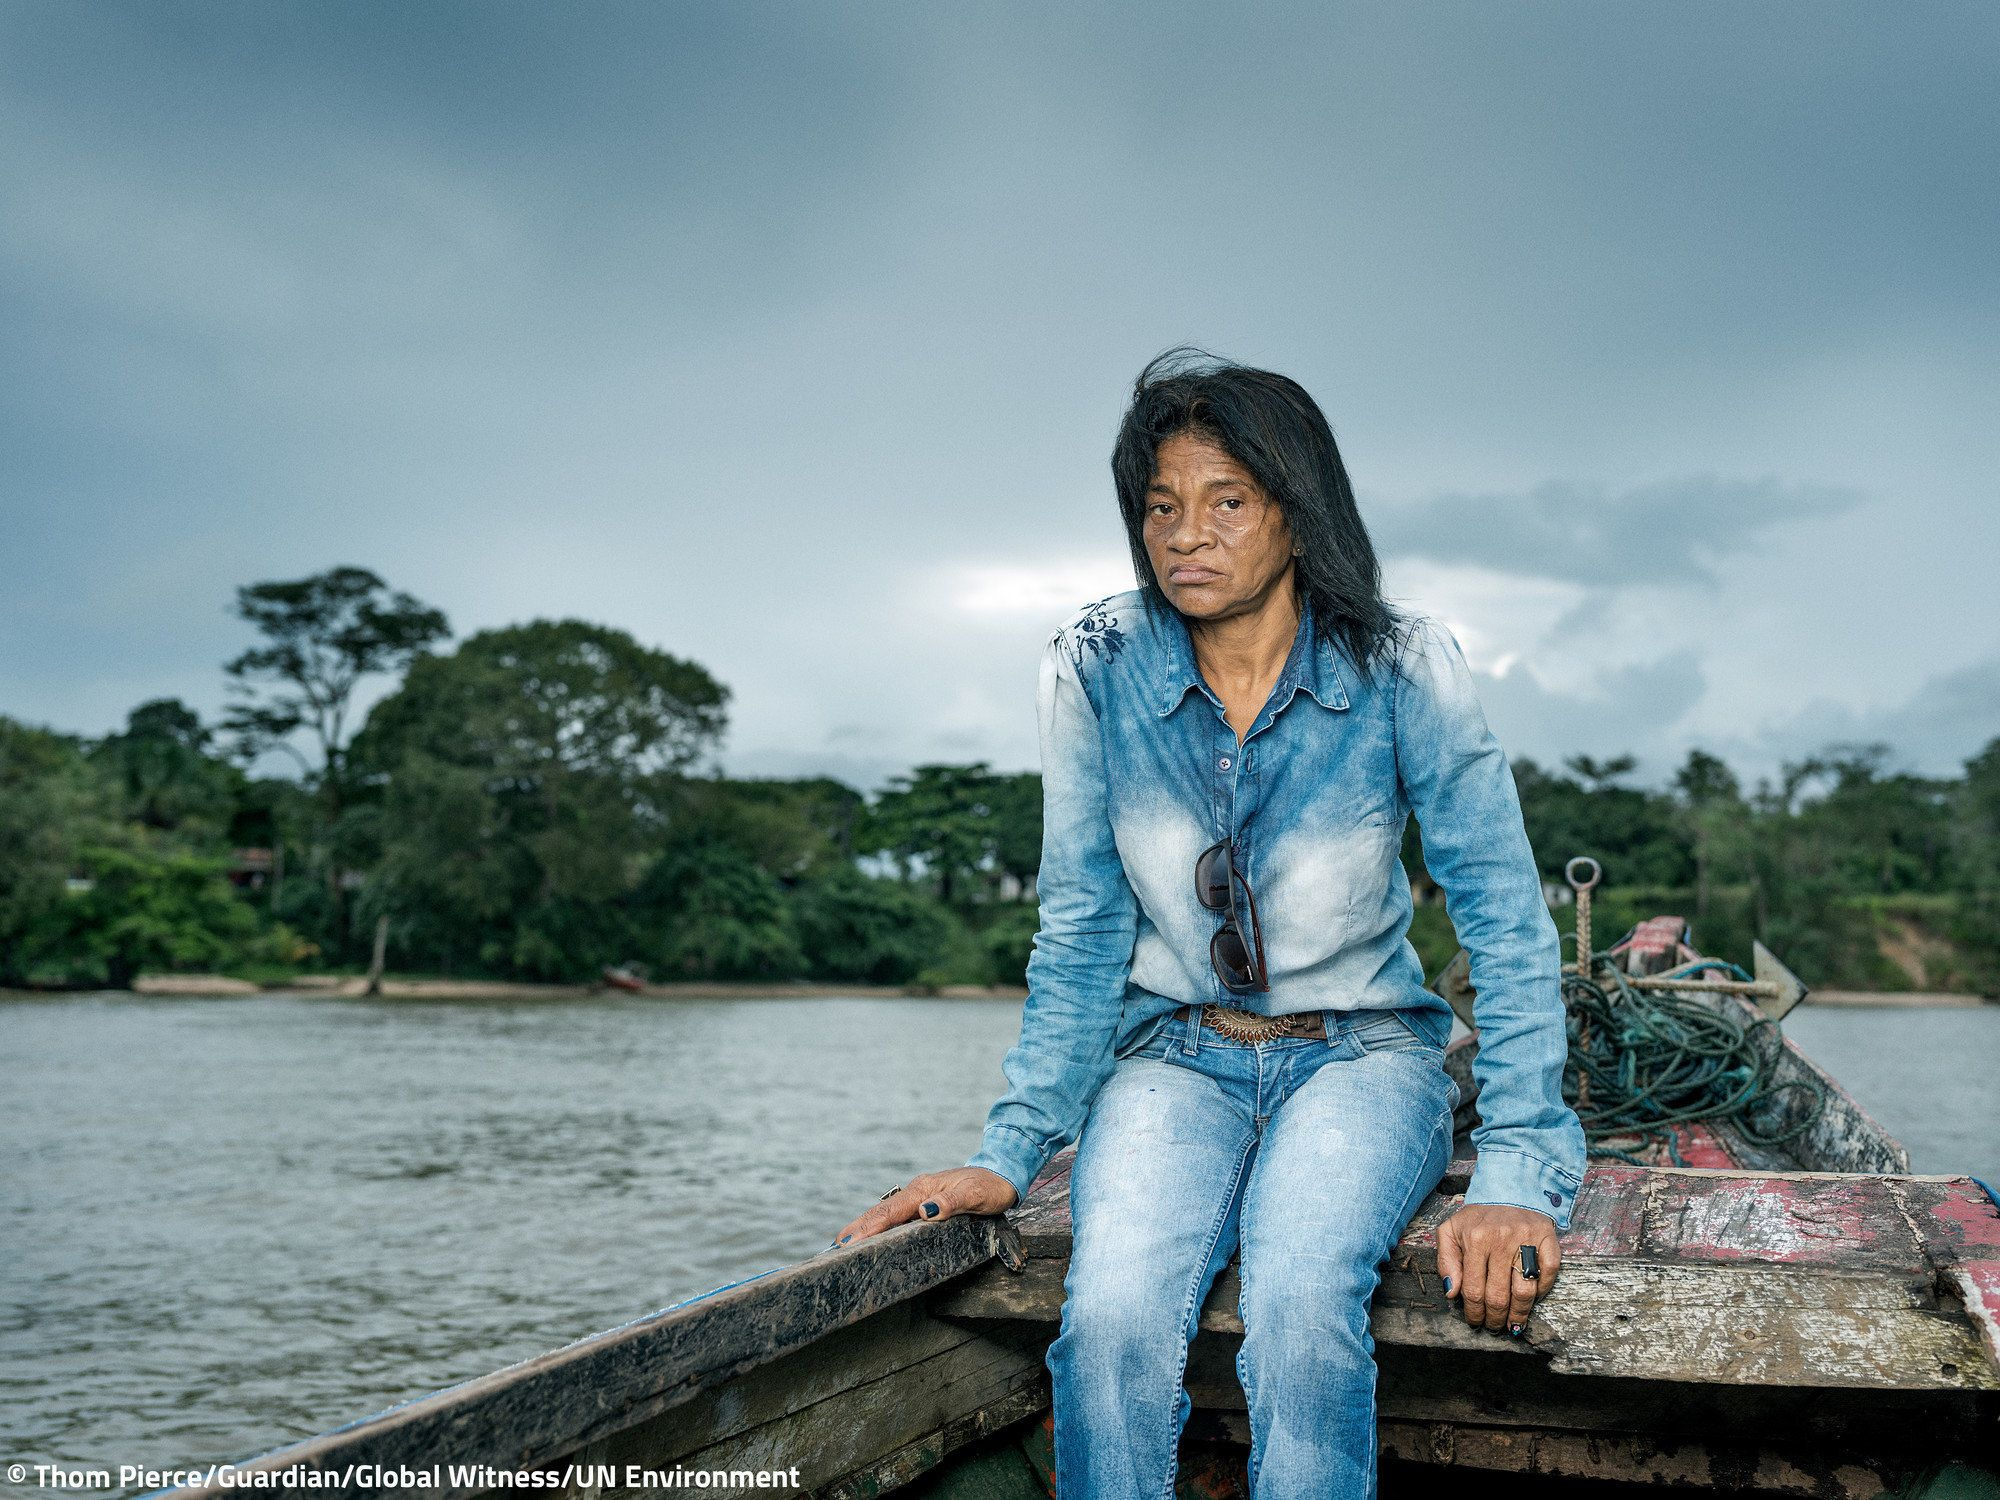 Maria do Socorro campaigns with communities against hydro aluminum factories, which are allegedly responsible for water poiso